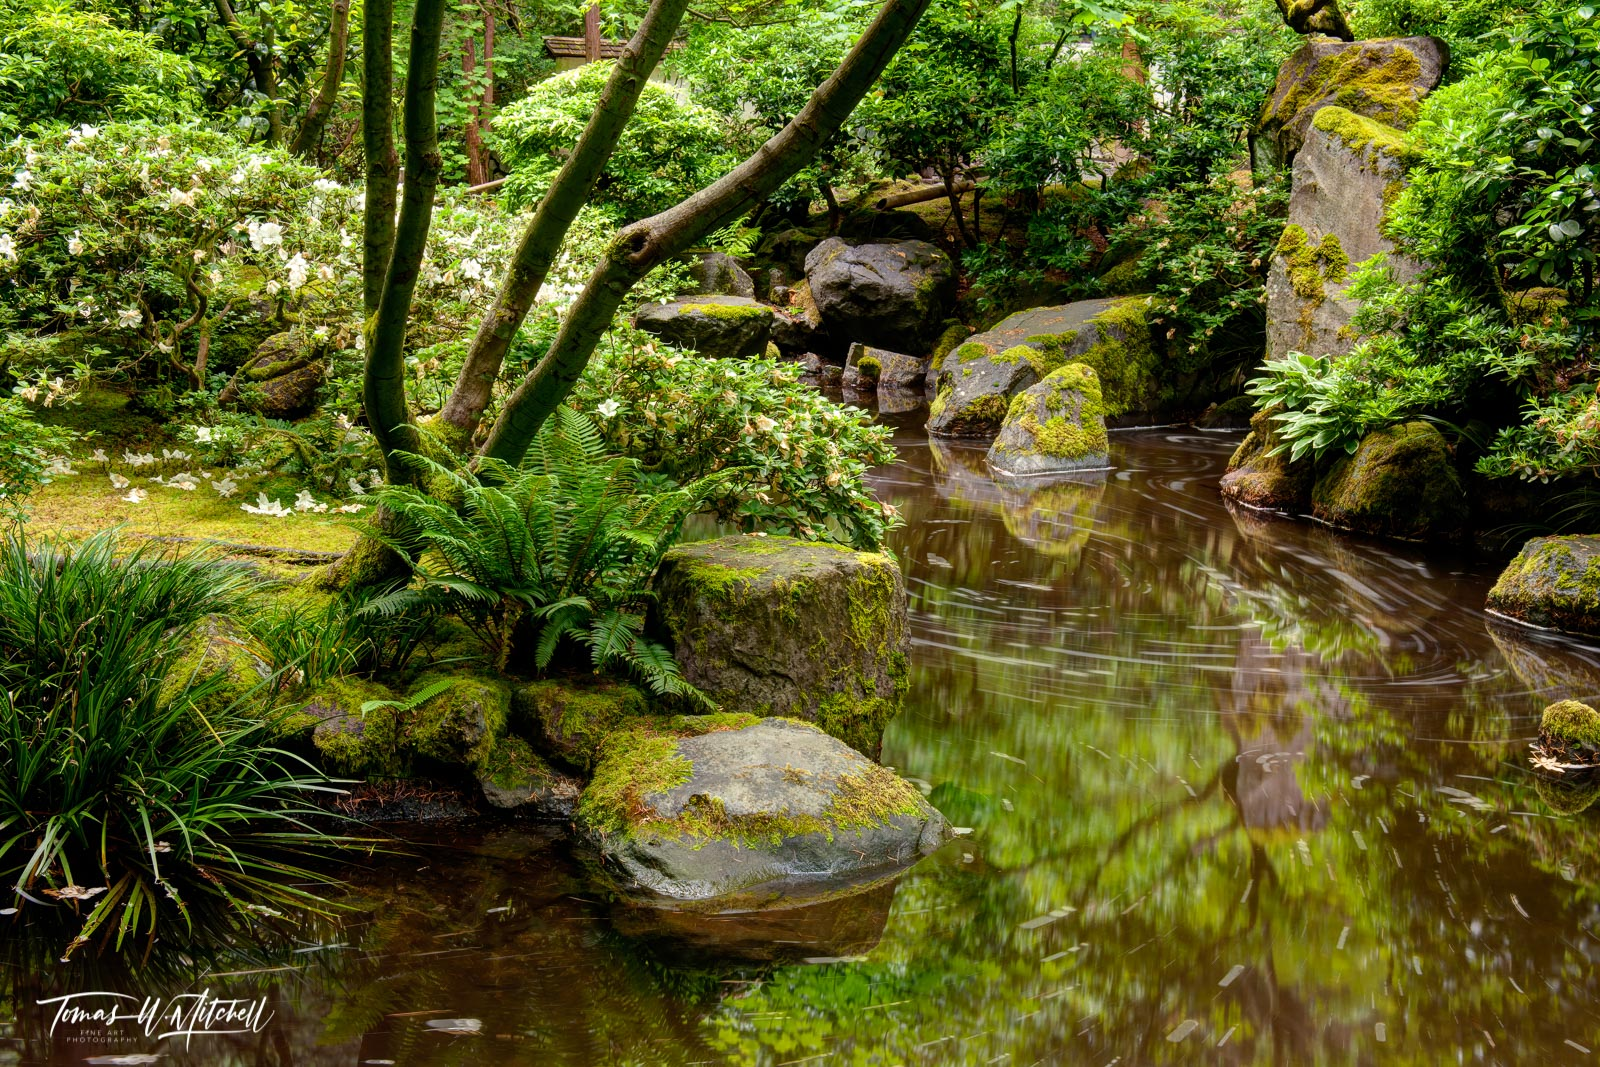 limited edition, fine art, prints, japanese garden, portland oregon, green, photograph, water, reflection, flower, fern, tree, photo